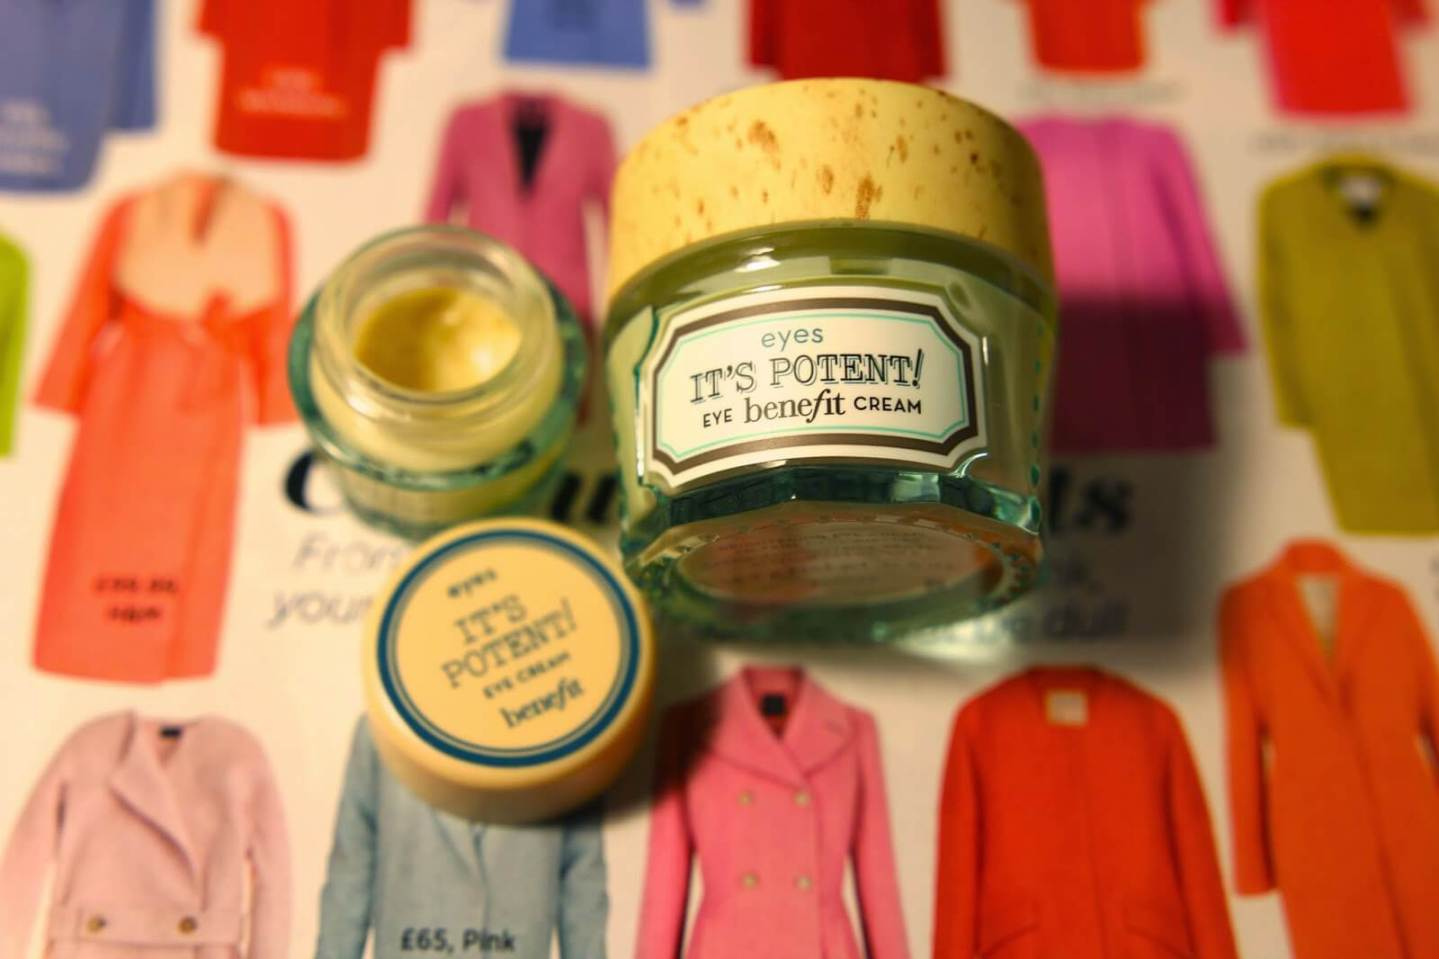 Refresh Your Eyes With Benefit's Potent Eye Cream